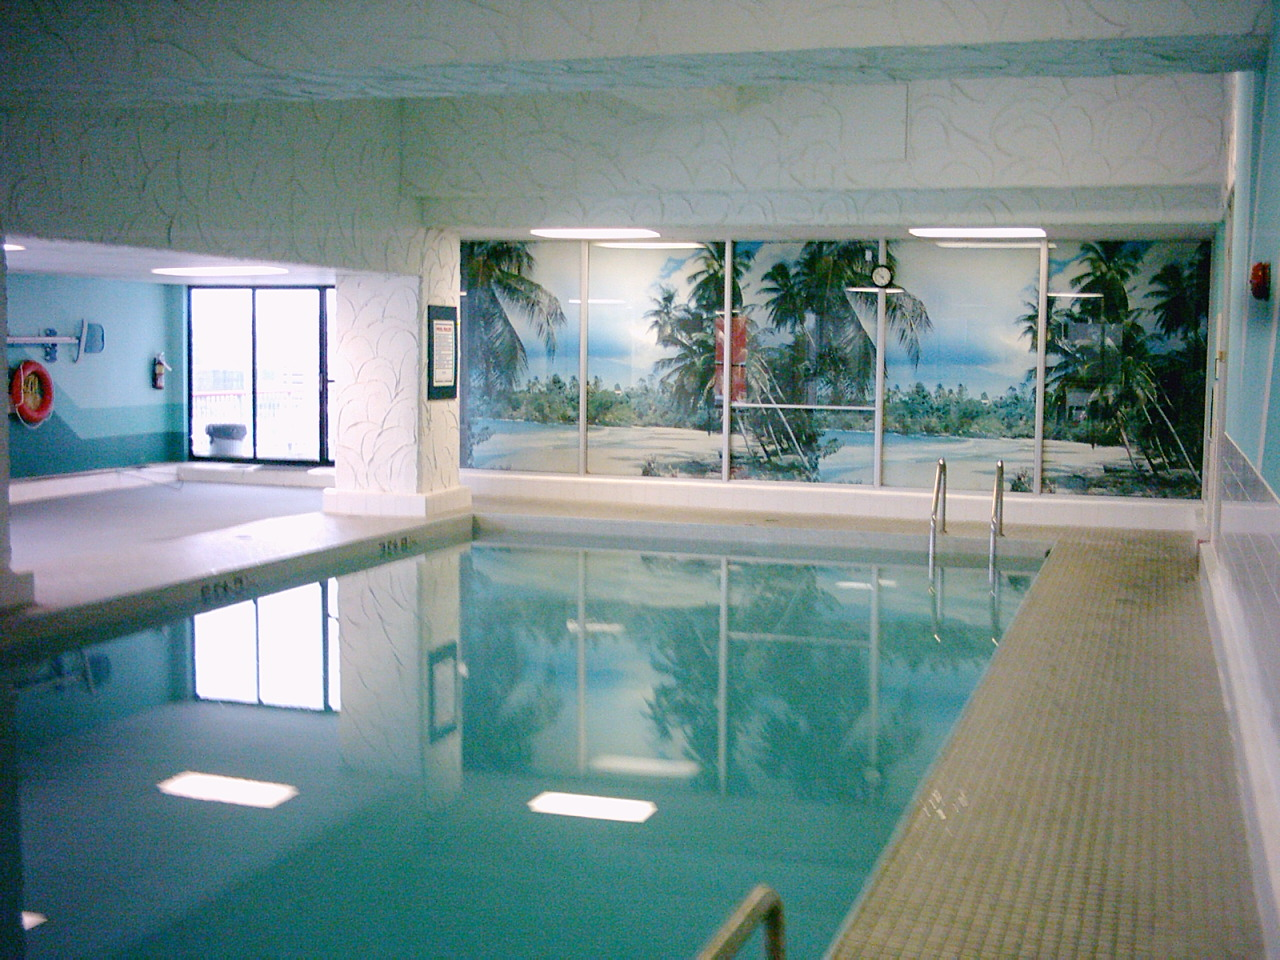 Interior design center inspiration for Swimming pool room ideas